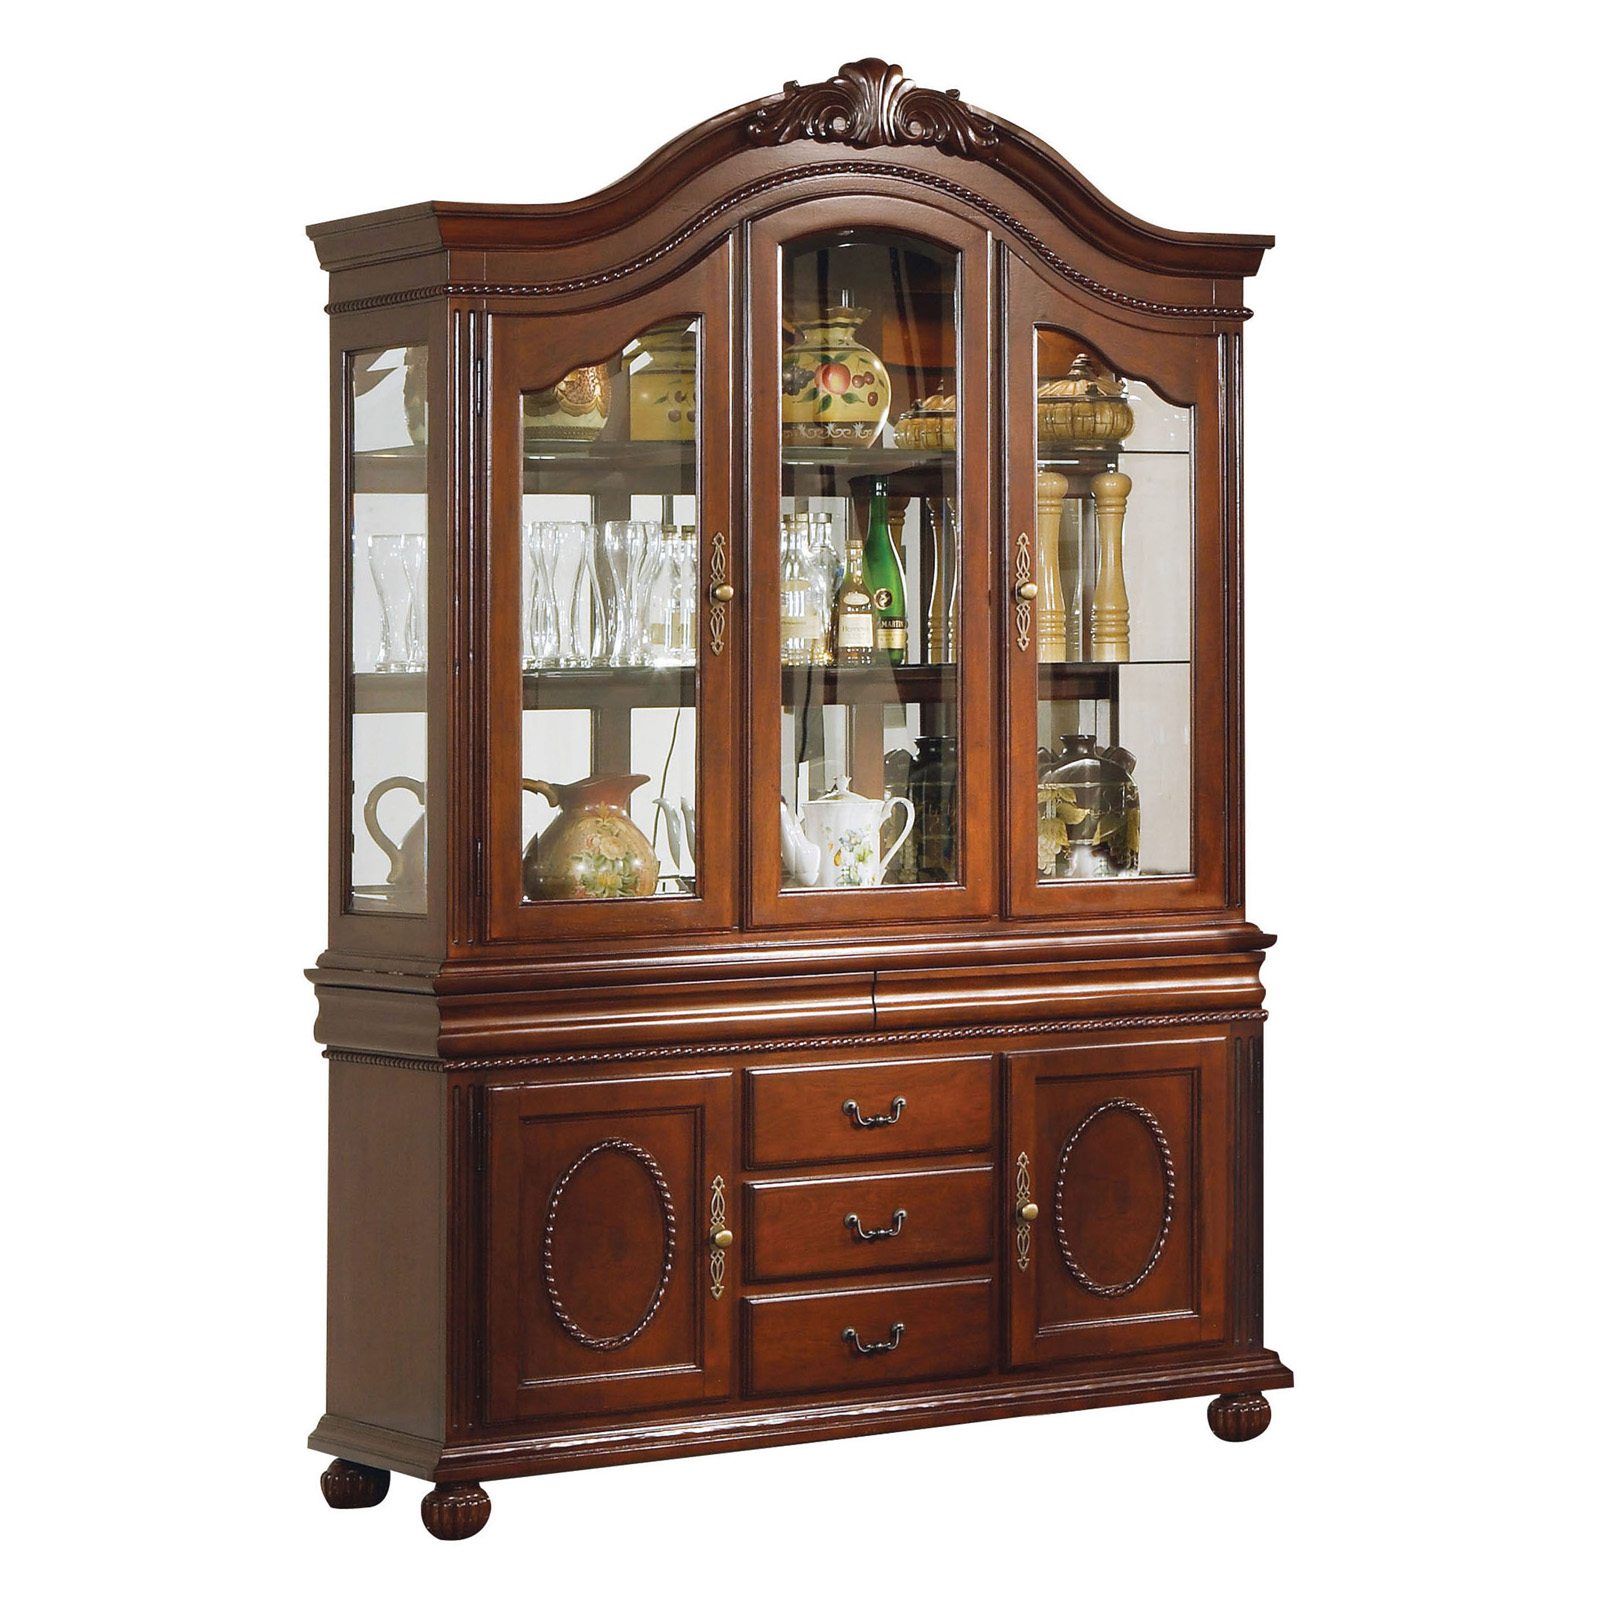 Incroyable Acme Furniture Classique Buffet With Hutch